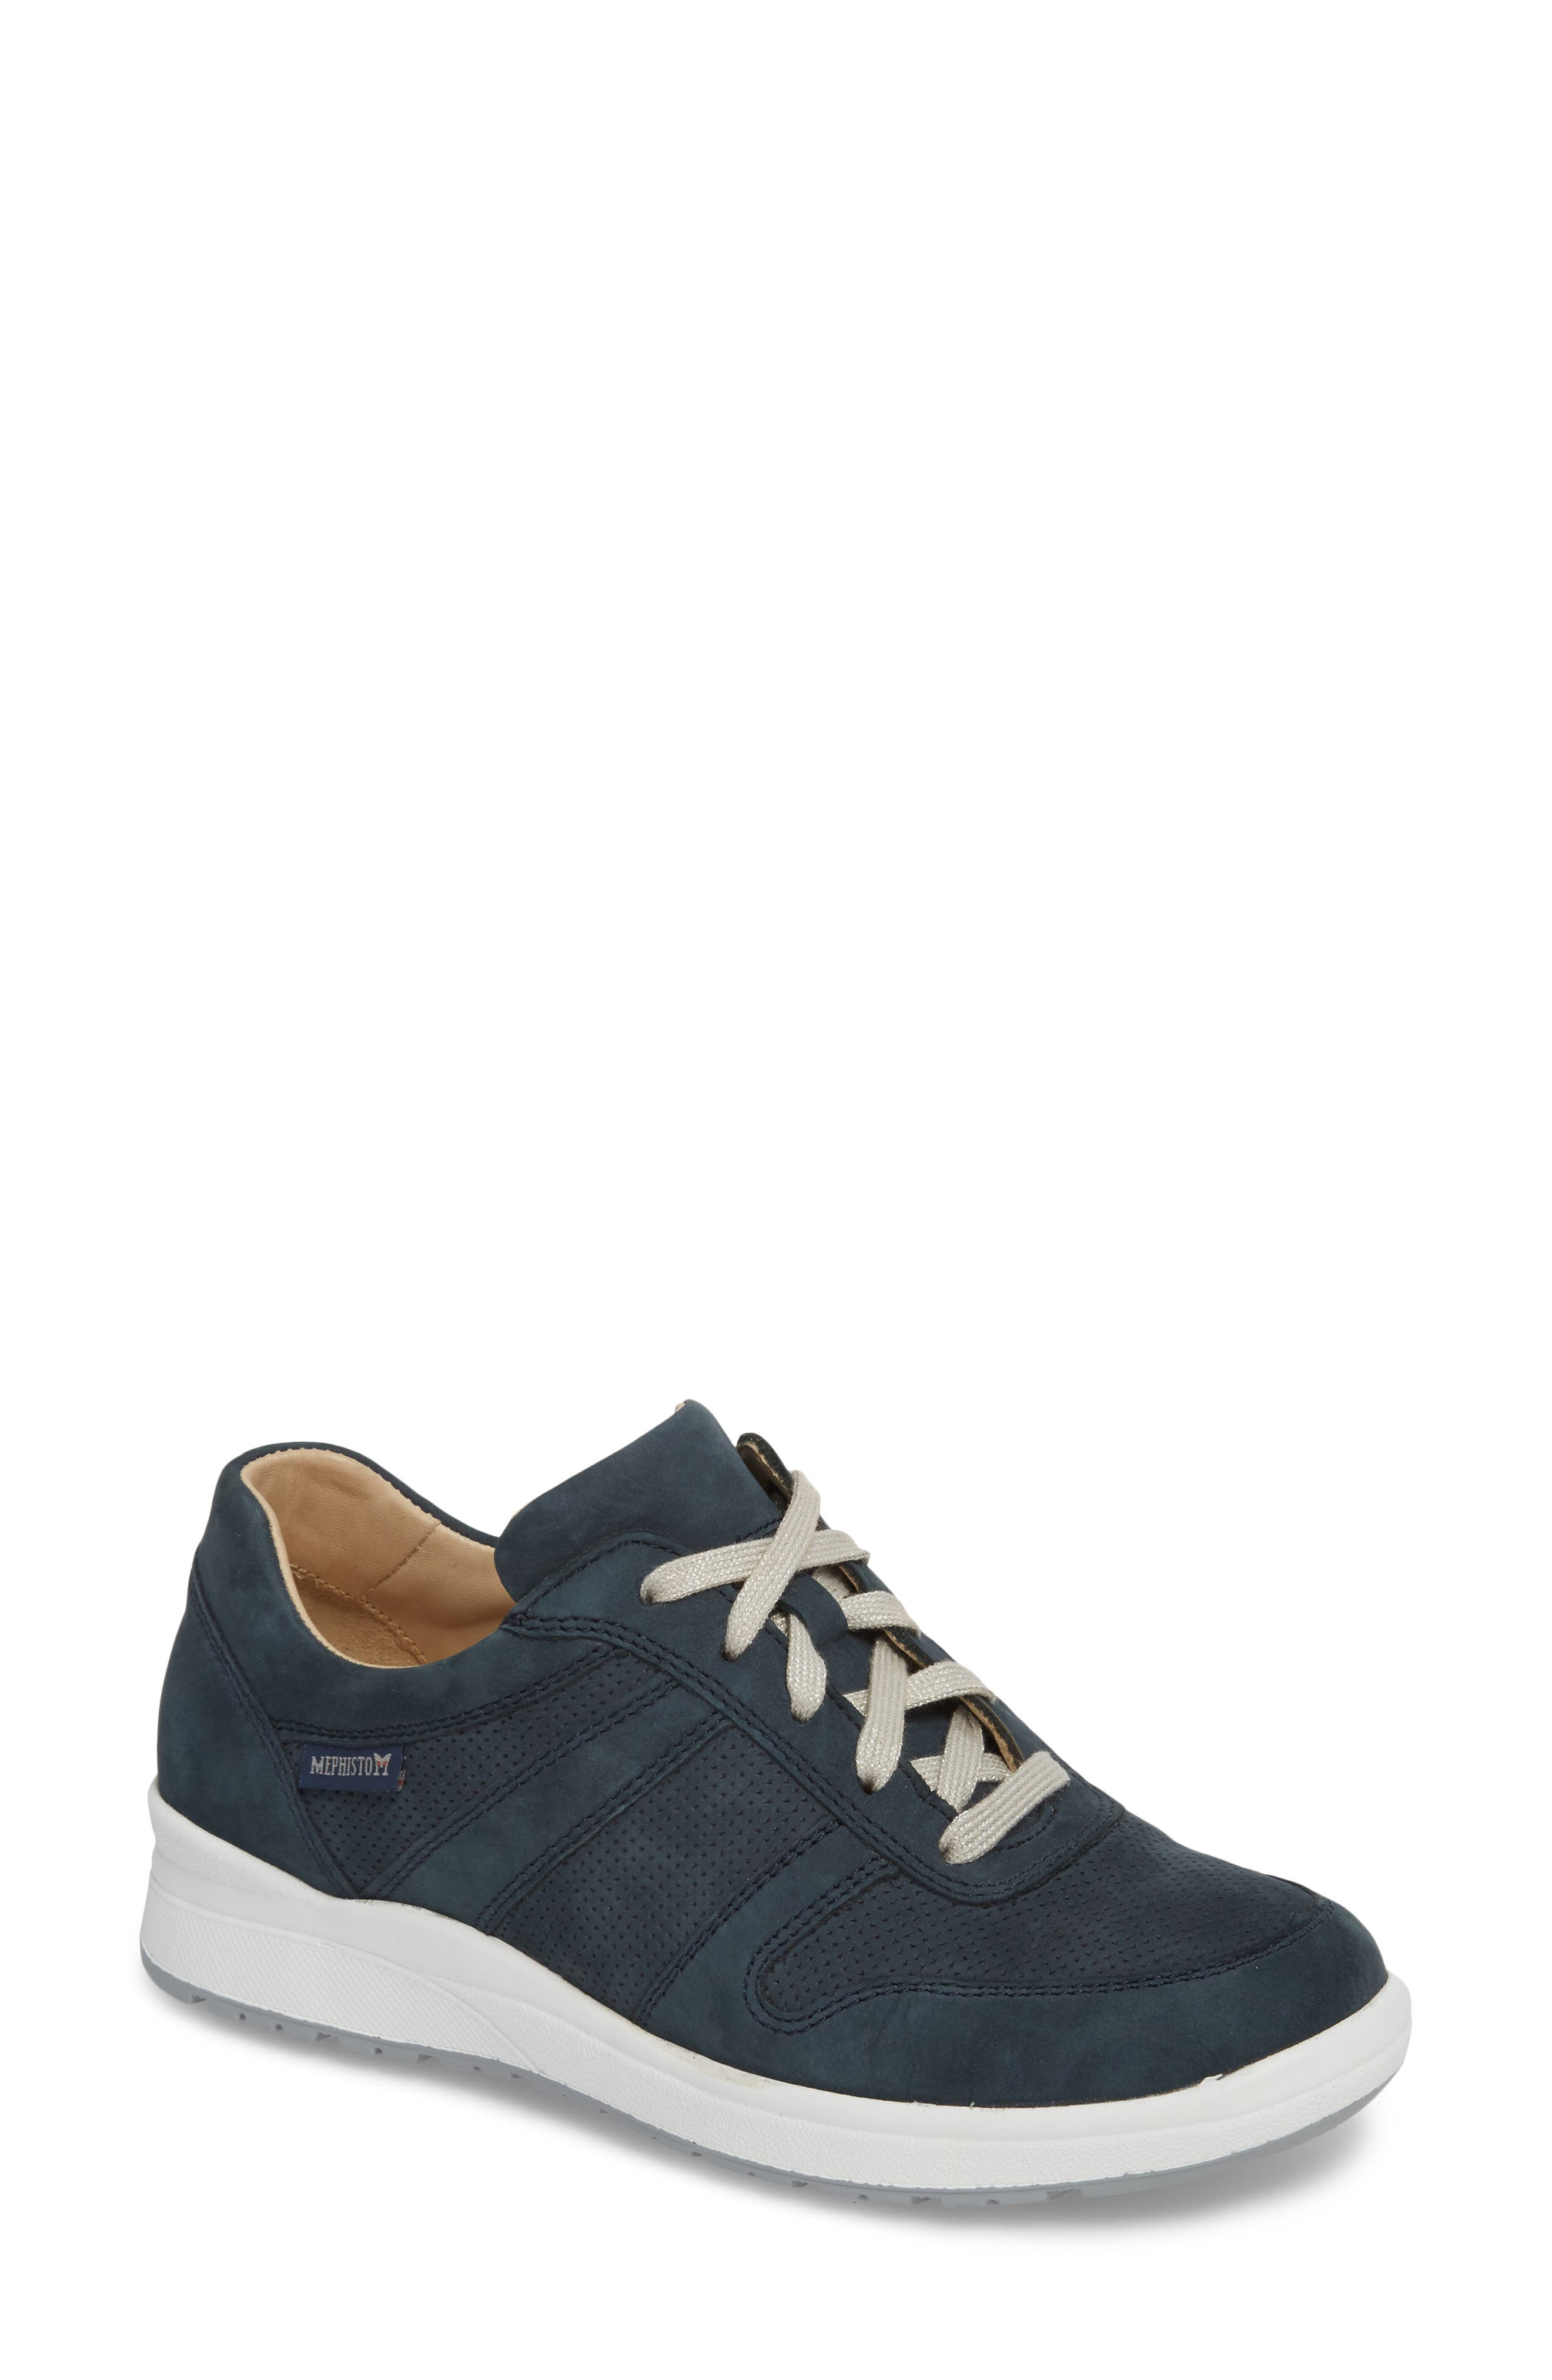 MEPHISTO, Rebecca Perforated Sneaker, Main thumbnail 1, color, NAVY